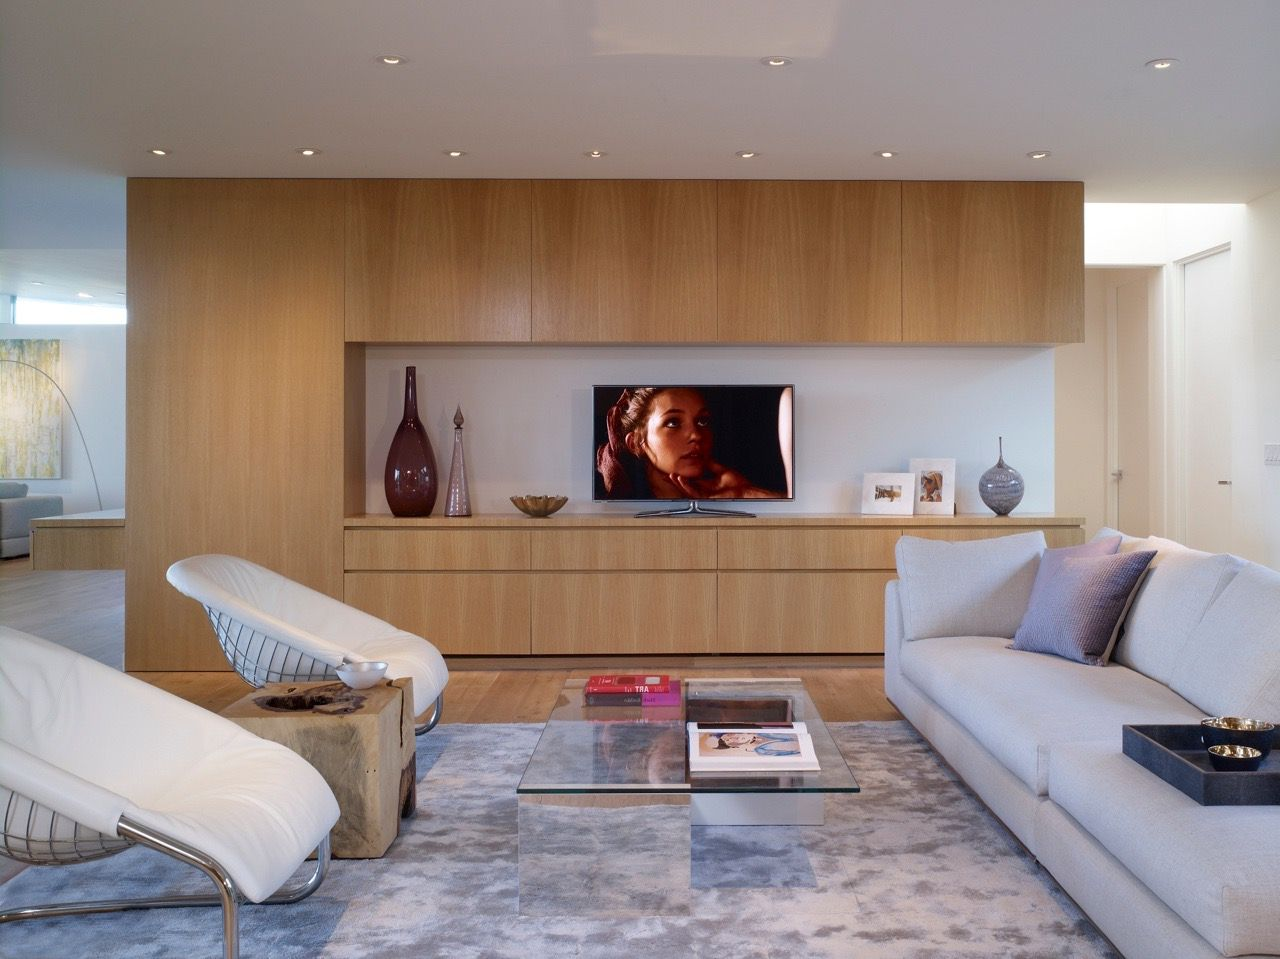 Showing 18 Of 31 Photos About Modern Family Room With Oak Wood Built In Tv Cabinets